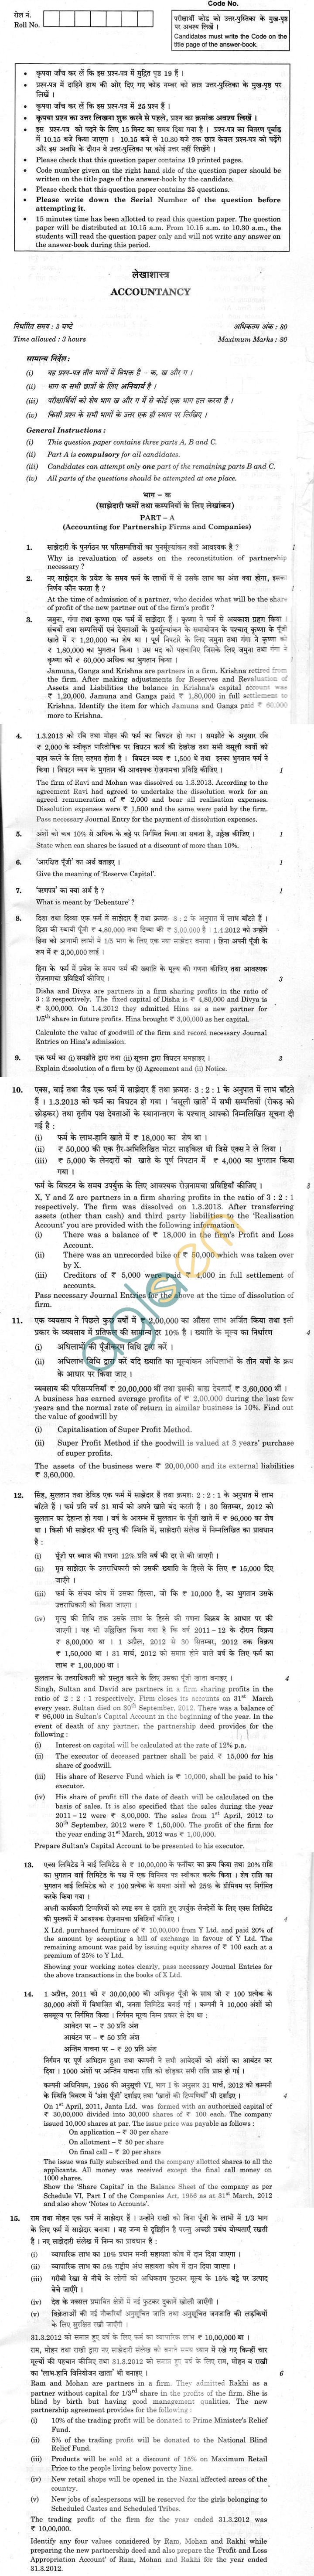 CBSE Compartment Exam 2013 Class XII Question Paper - Accountancy